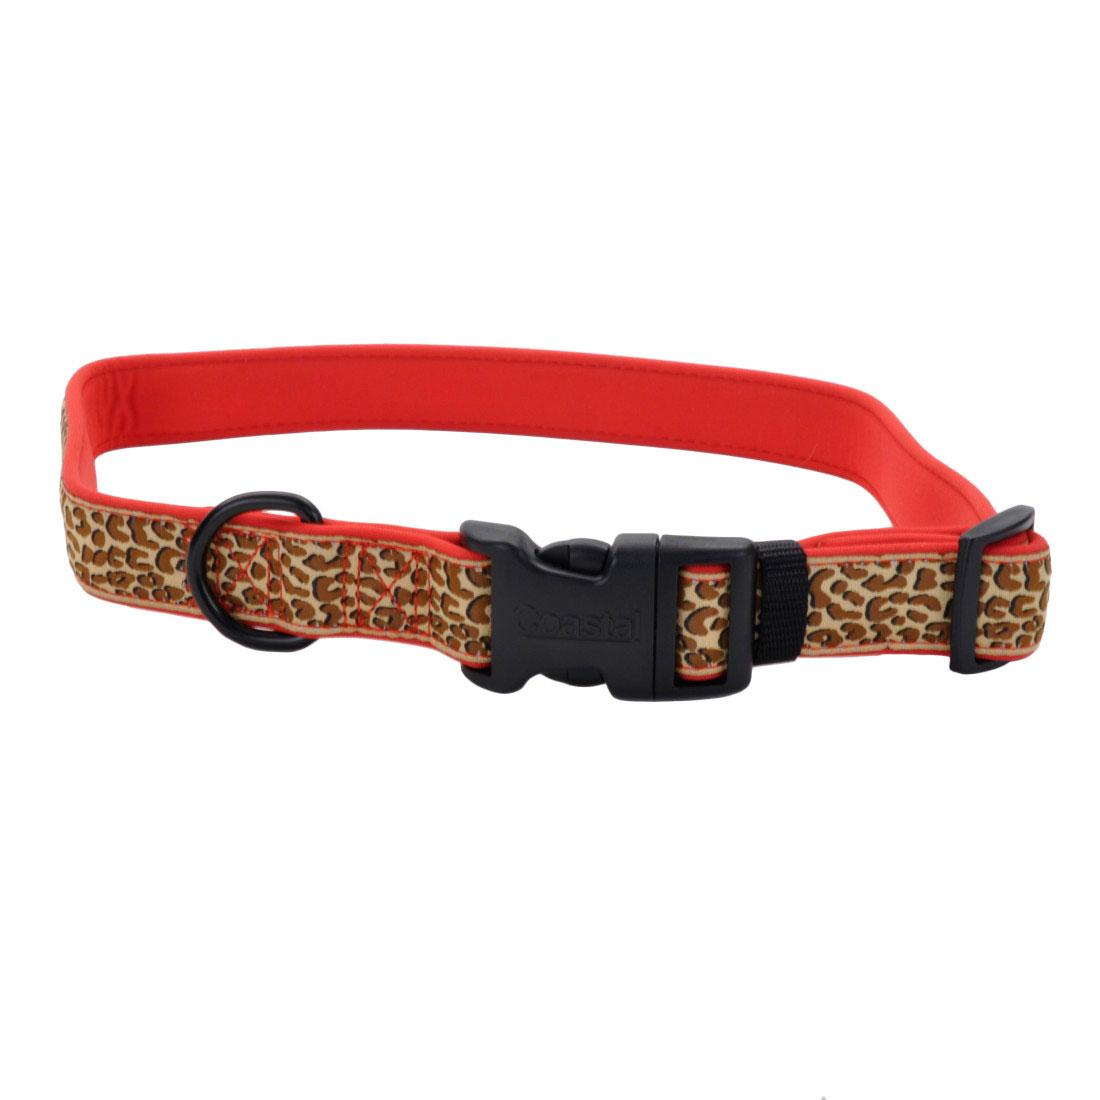 Ribbon Weave Dog Collar, Brown Leopard on Red Image